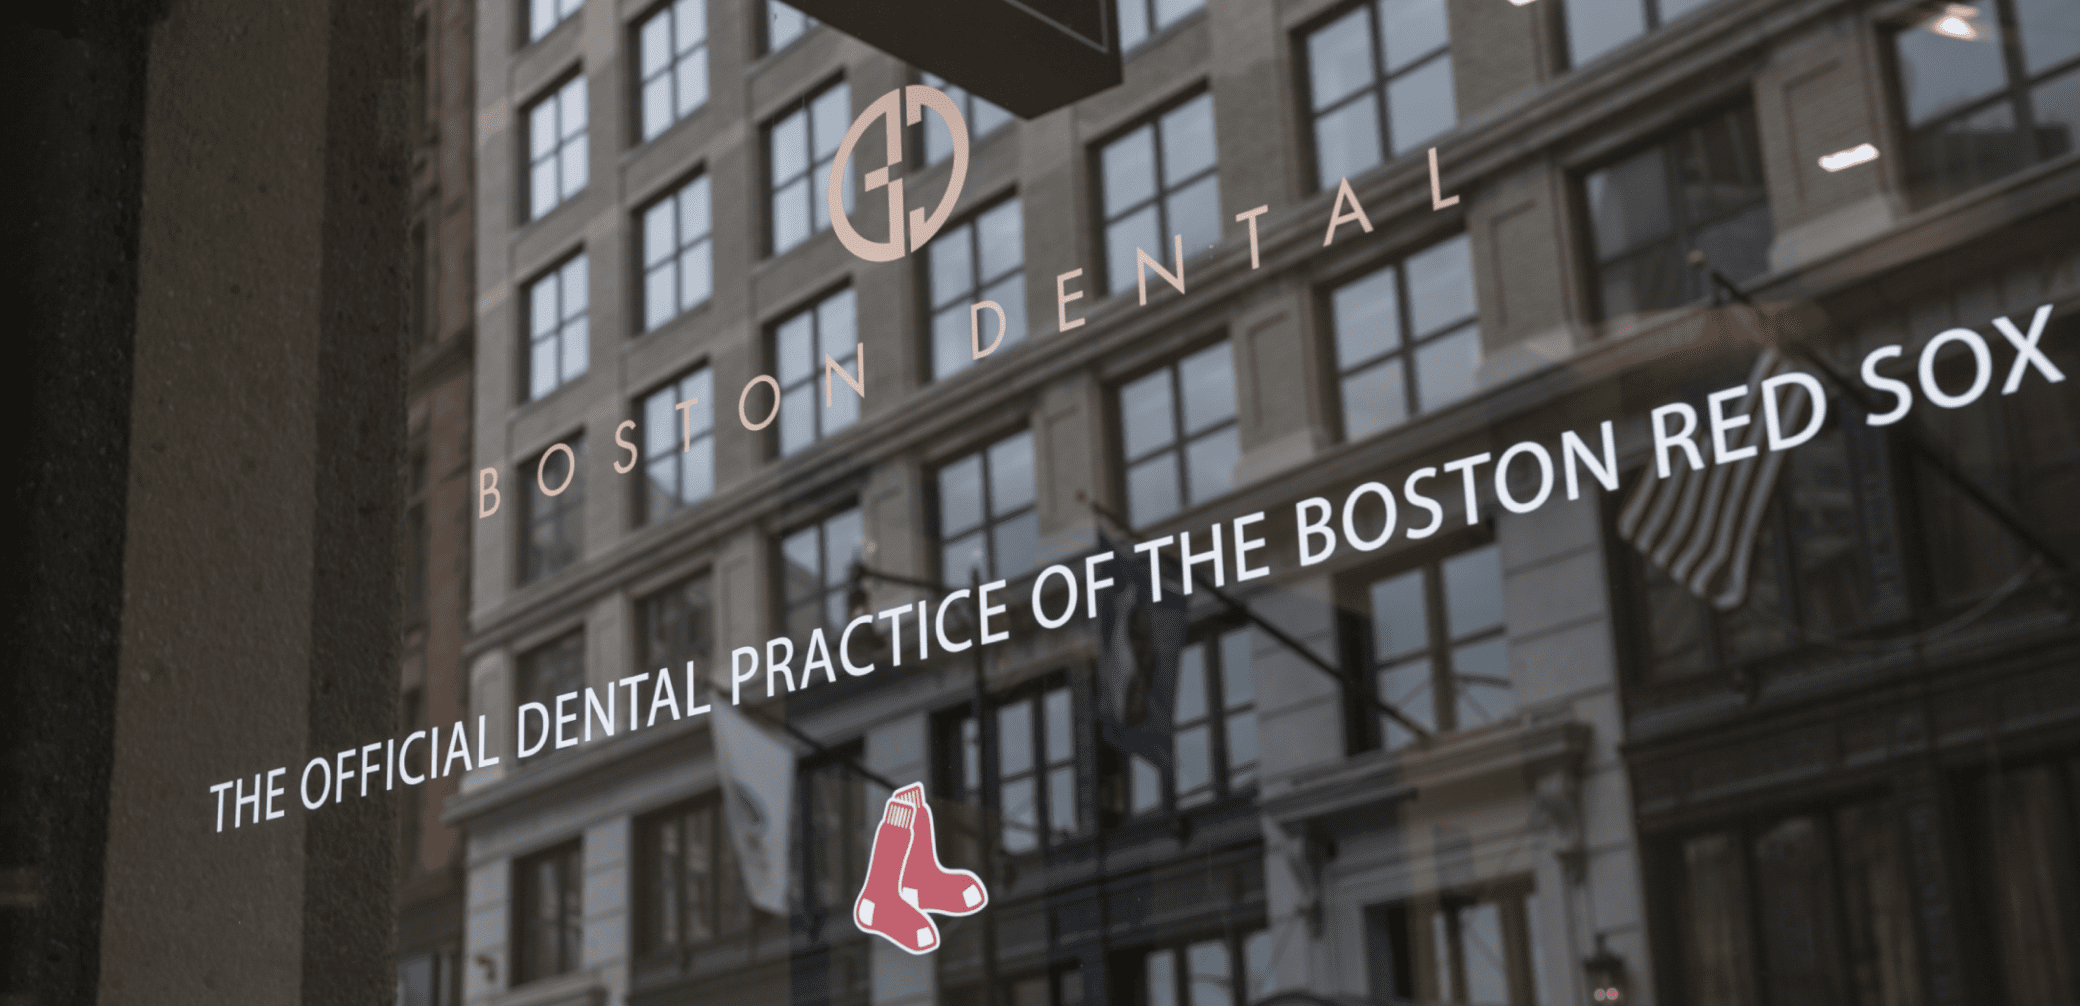 Boston Dental - Government Center - Official Dentists for the Boston Red Sox